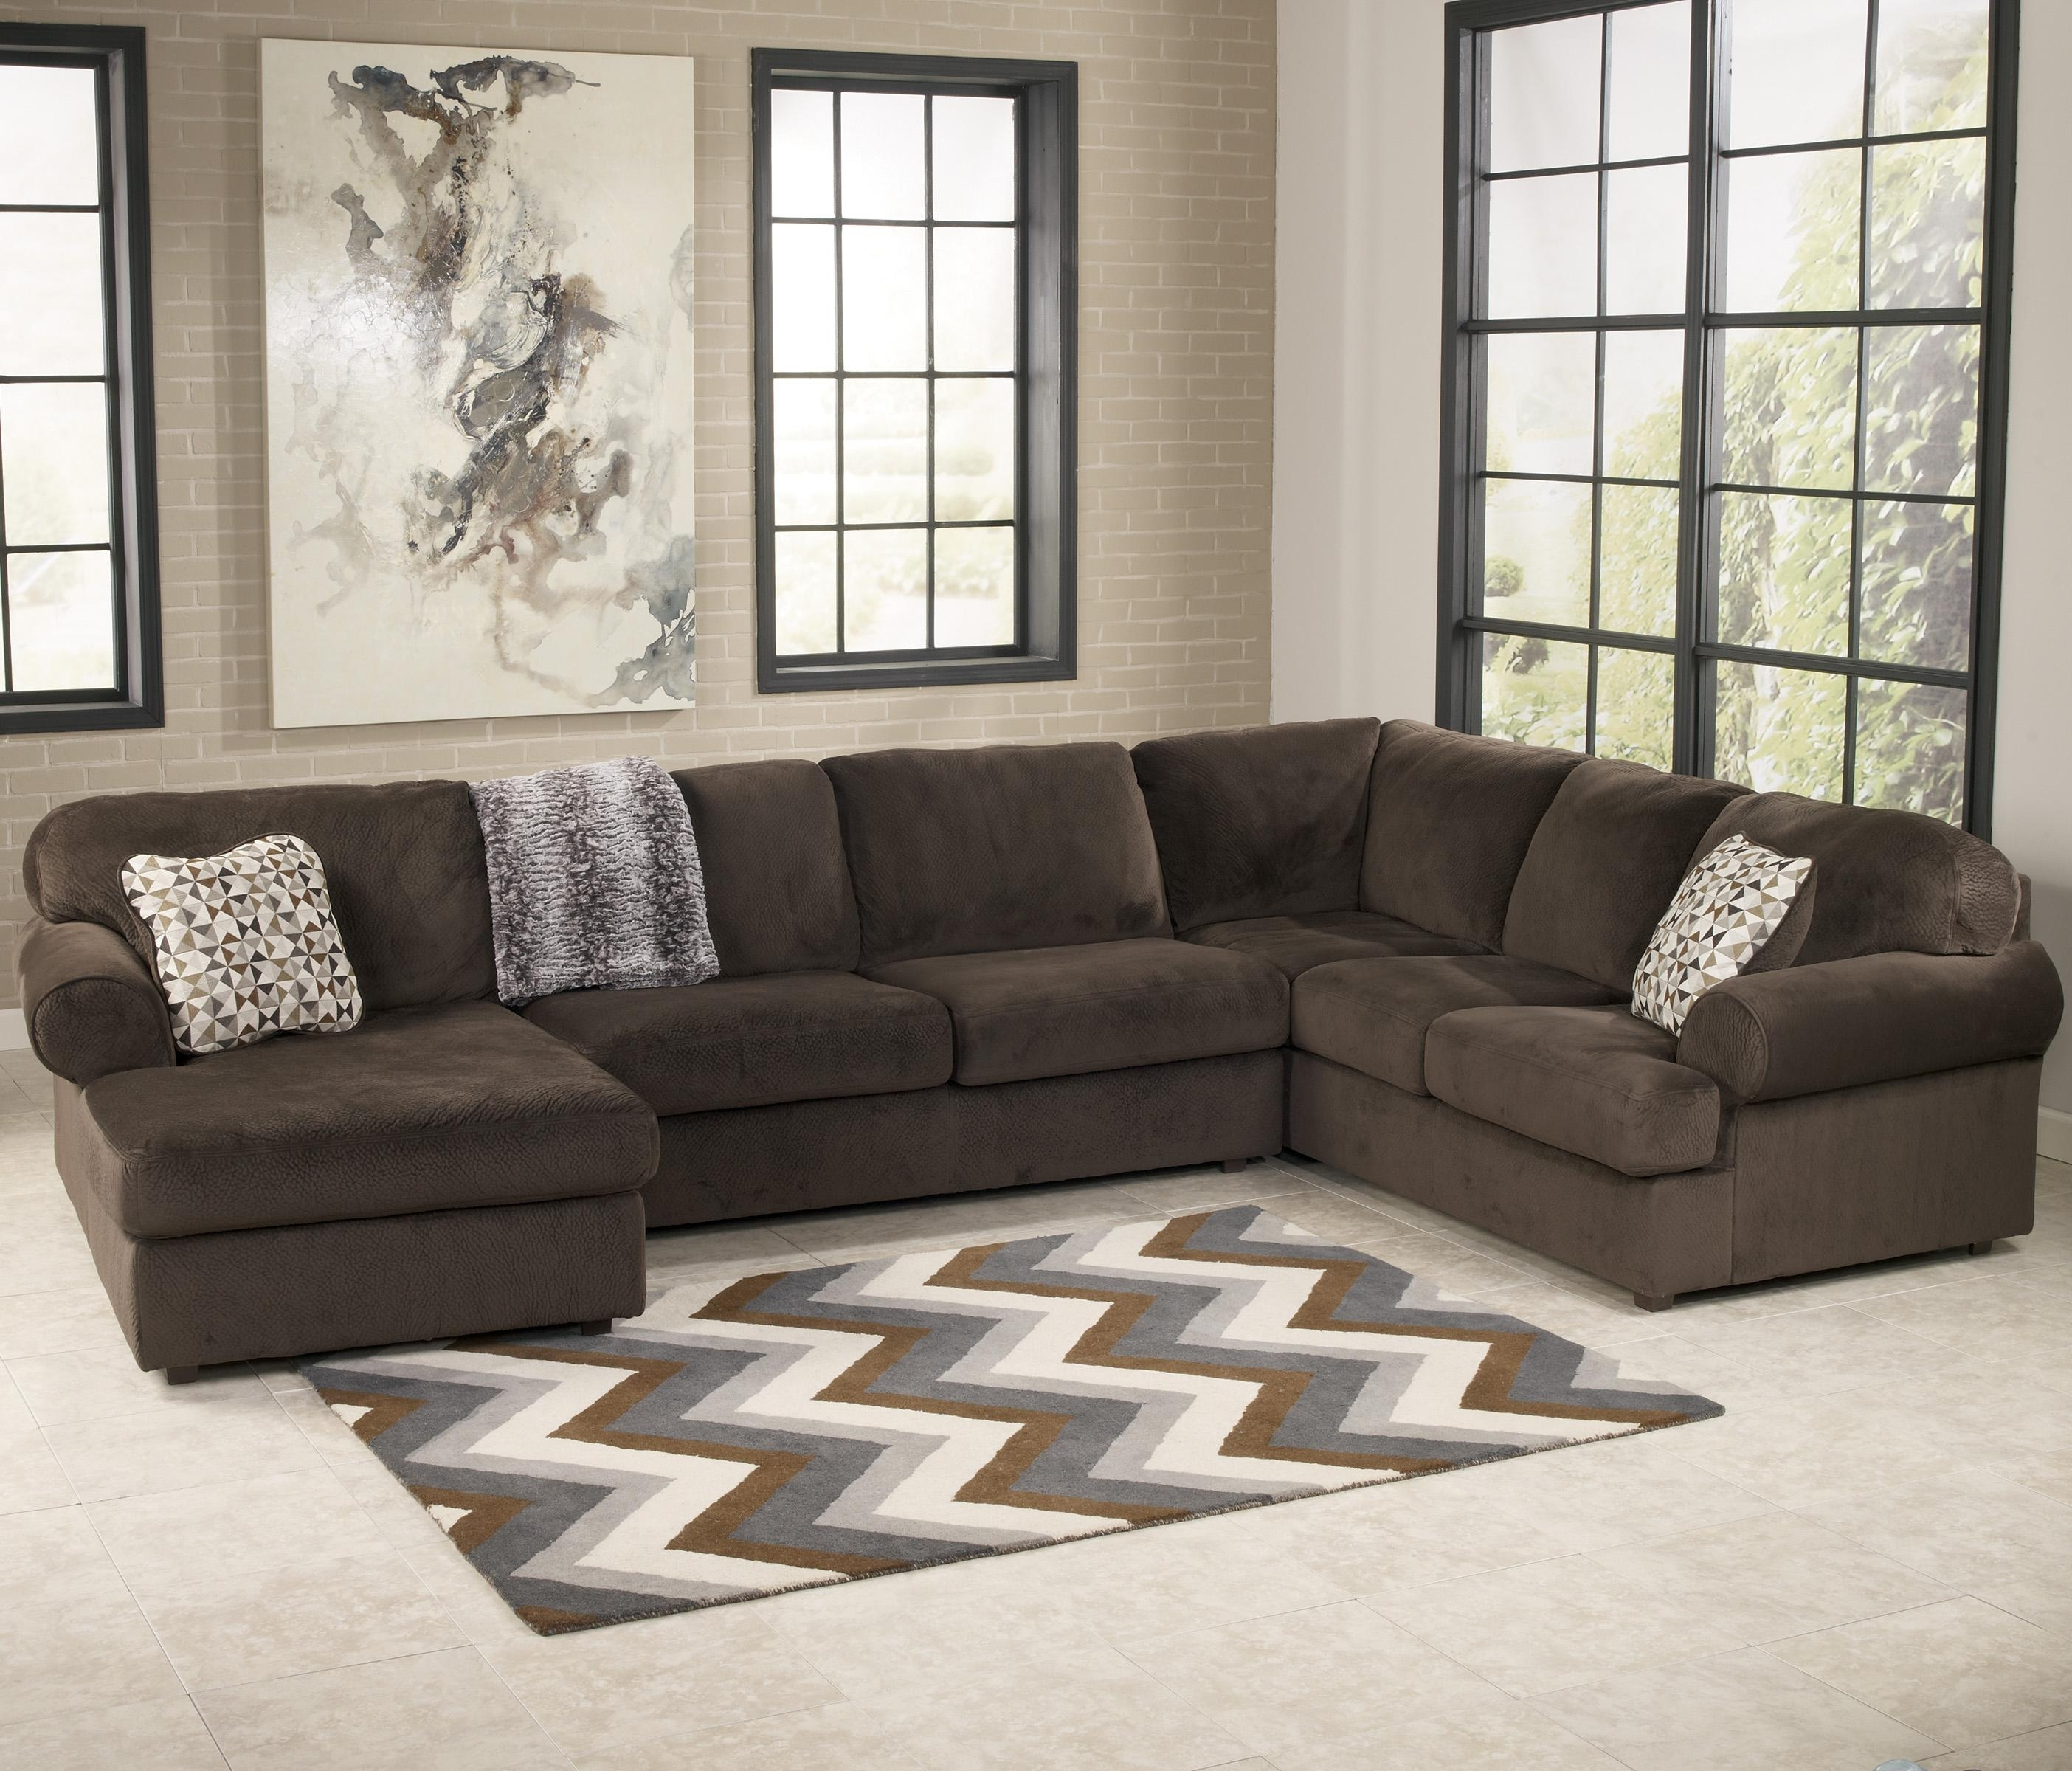 Signature Designashley Jessa Place – Chocolate Casual Sectional With Regard To Chocolate Sectional Sofas (View 3 of 10)